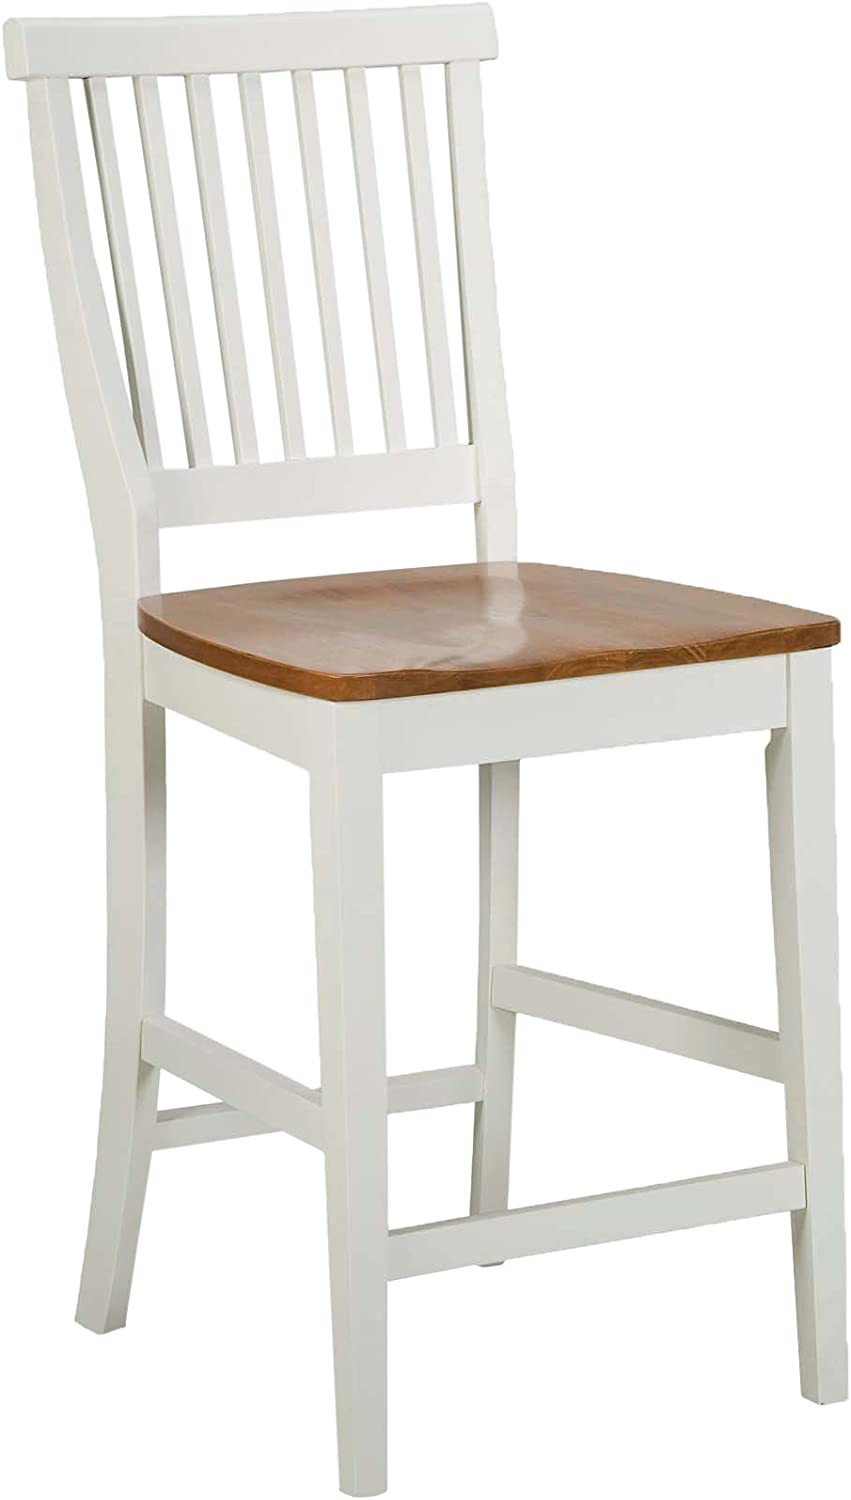 Americana White Distressed Oak bar Stool, 24 , by Home Styles